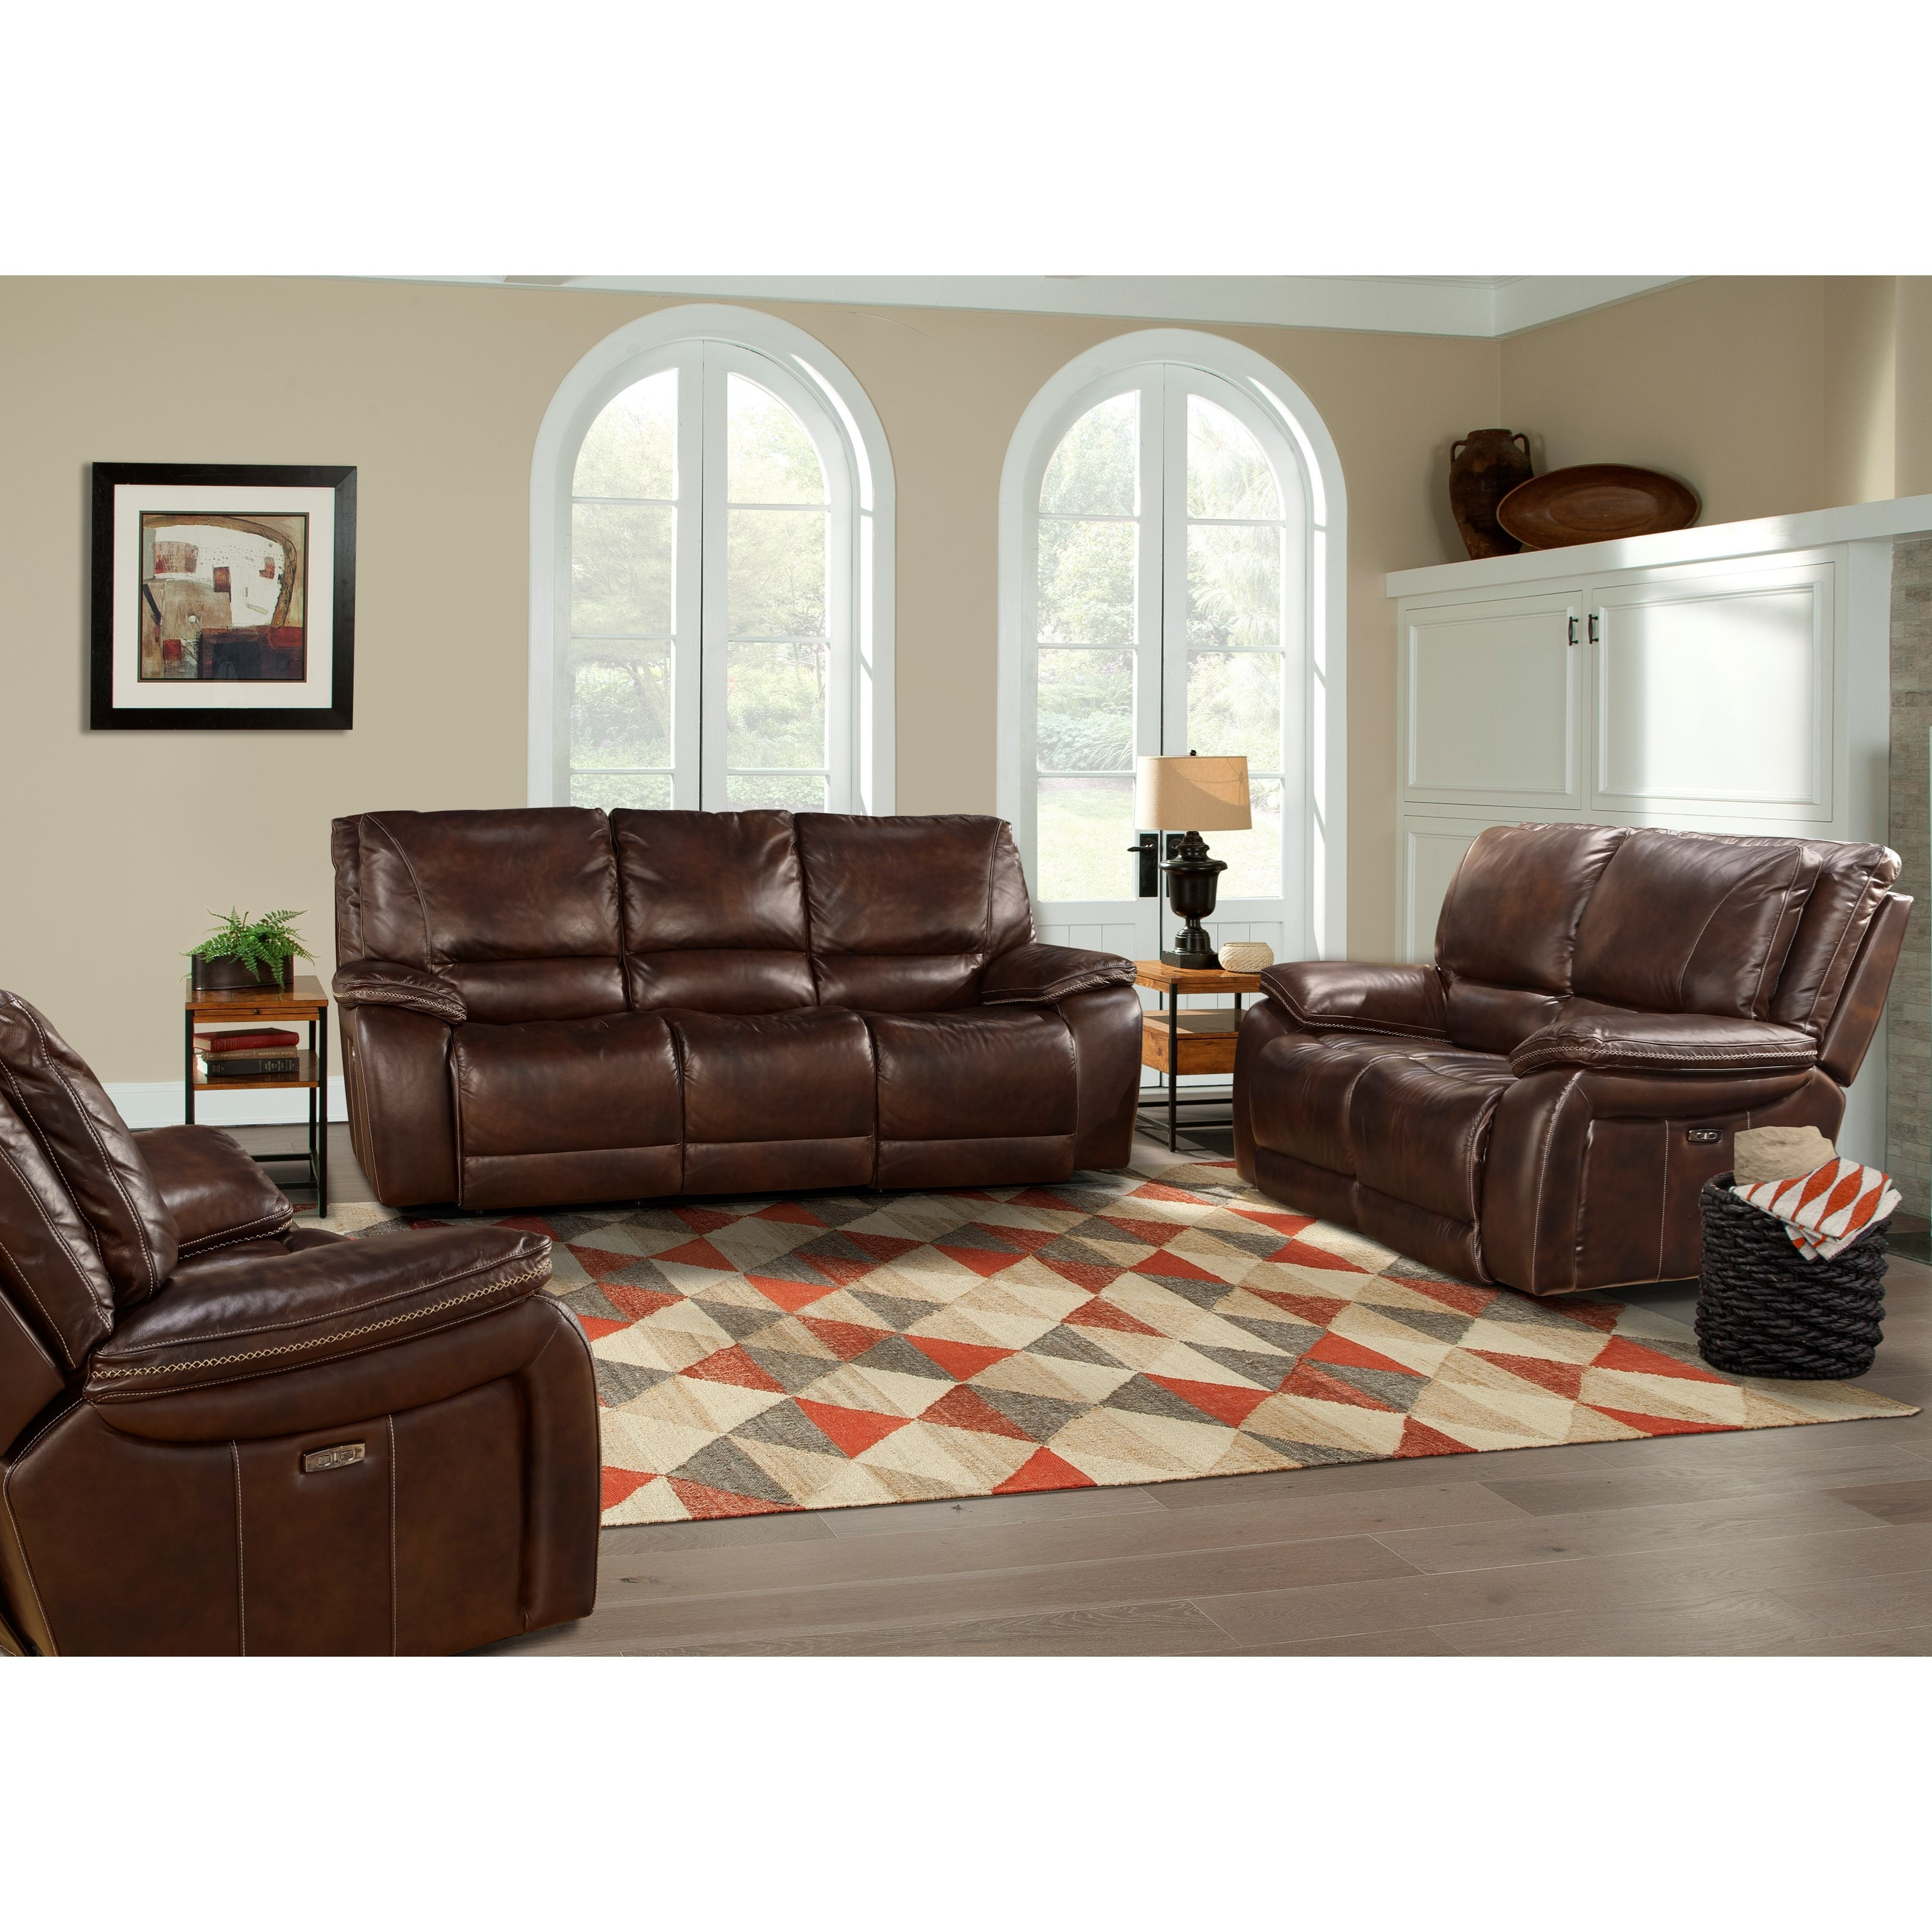 Parker Living Vail Power Reclining Living Room Group